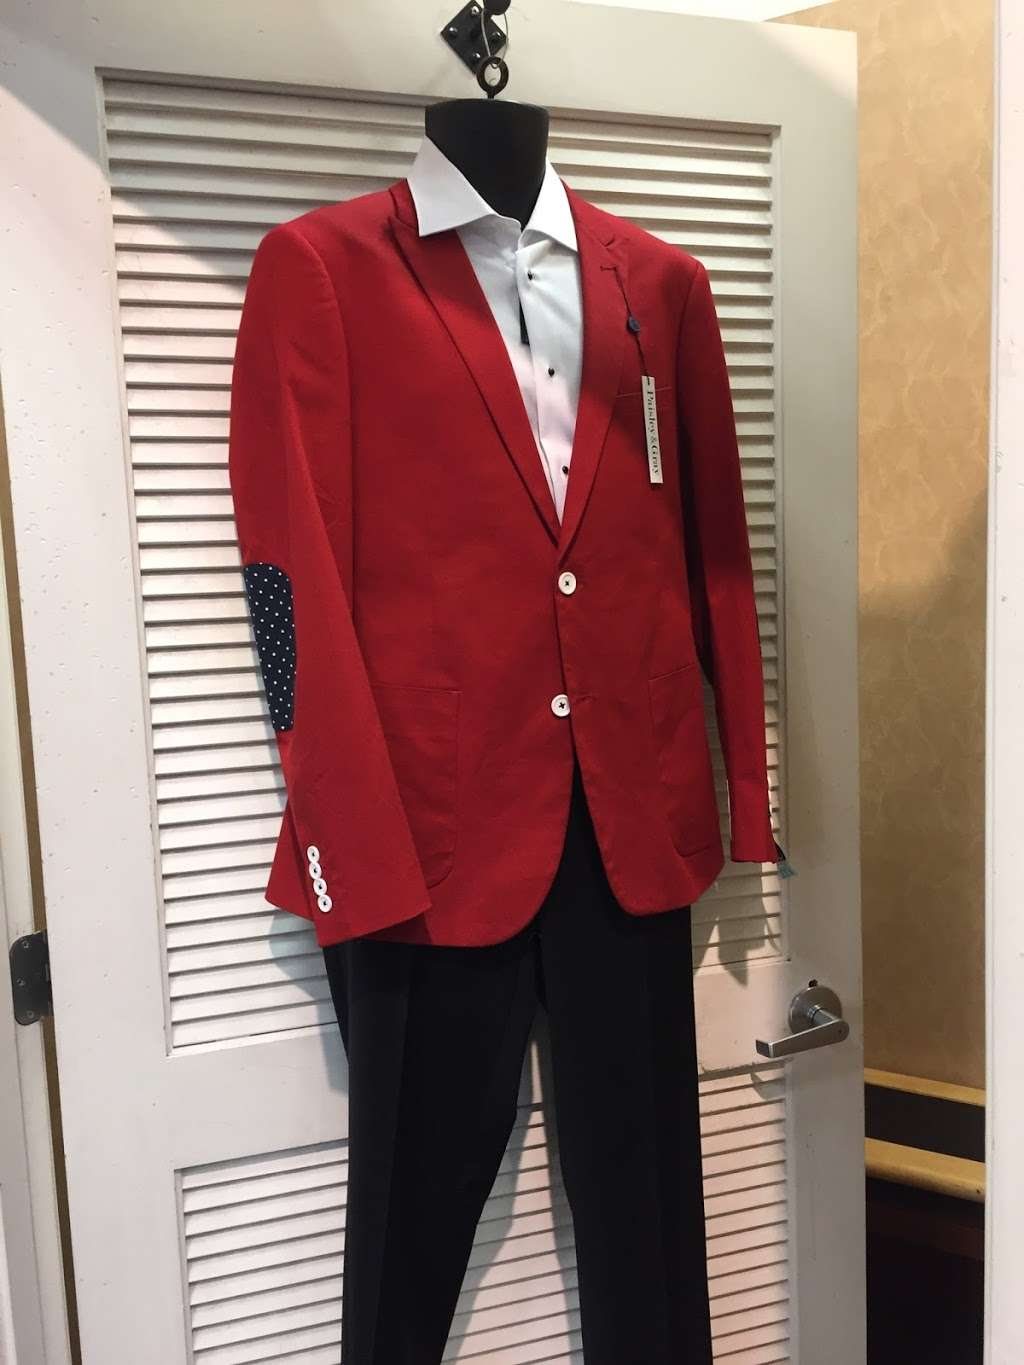 Carmens Sewing & Alterations - store  | Photo 5 of 10 | Address: 411 Bayview Dr, Edgewater, MD 21037, USA | Phone: (908) 577-6173